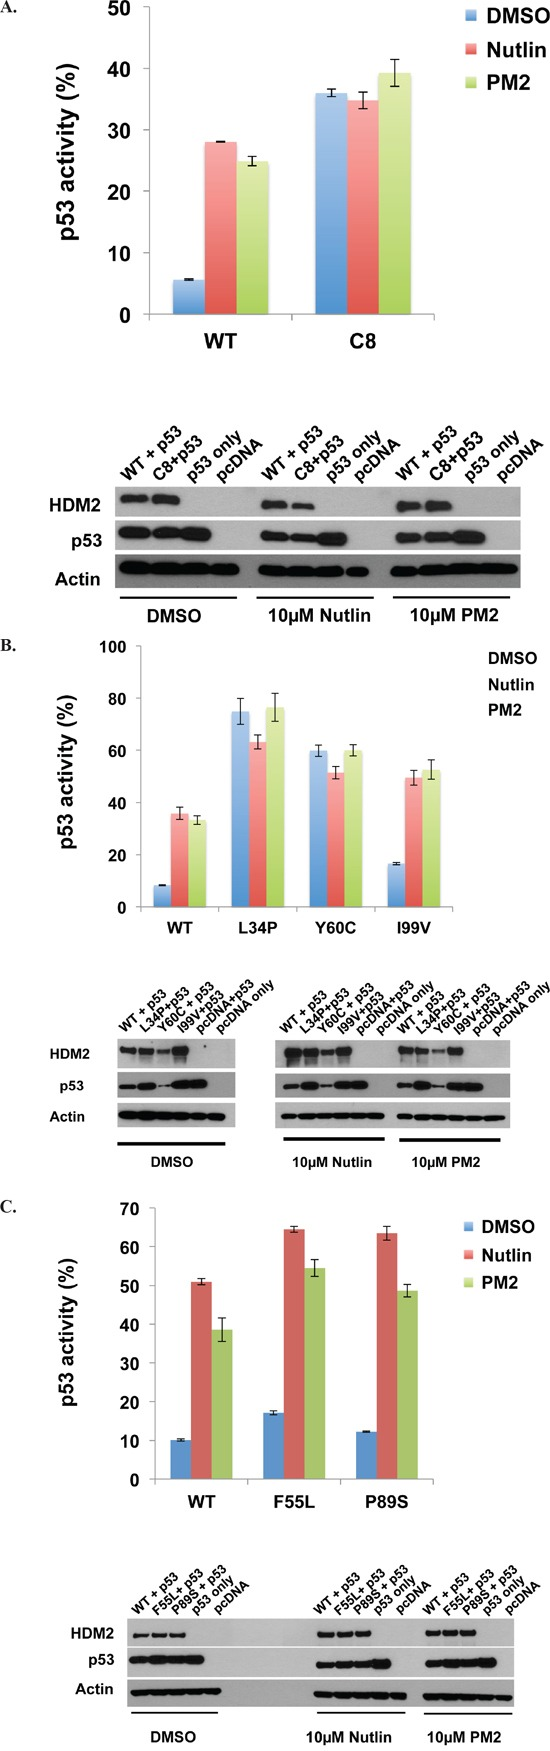 PM2 shows reduced inhibition of selected HDM2 variants in p53/MDM2-null DKO cells A. Wild-type and HDM2-C8 (full-length) were co-transfected with p53 and p53-reporter gene, and reporter gene activity measured in the presence of PM2 (20 μM) or Nutlin (10 μM). p53 activity is denoted as percentage of that observed when p53-alone co-transfected with reporter gene. Shown below are Western blots indicating expression levels of HDM2 variants and p53 cotransfected into DKO cells. B and C. As in 'A', with wild-type HDM2 and indicated HDM2-C8 derived point mutants (full length) co-transfected into DKO cells. p53 activity is denoted as percentage of that observed when p53-alone co-transfected with reporter gene. Shown below are Western blots indicating expression levels of HDM2 variants and p53 cotransfected into DKO cells.